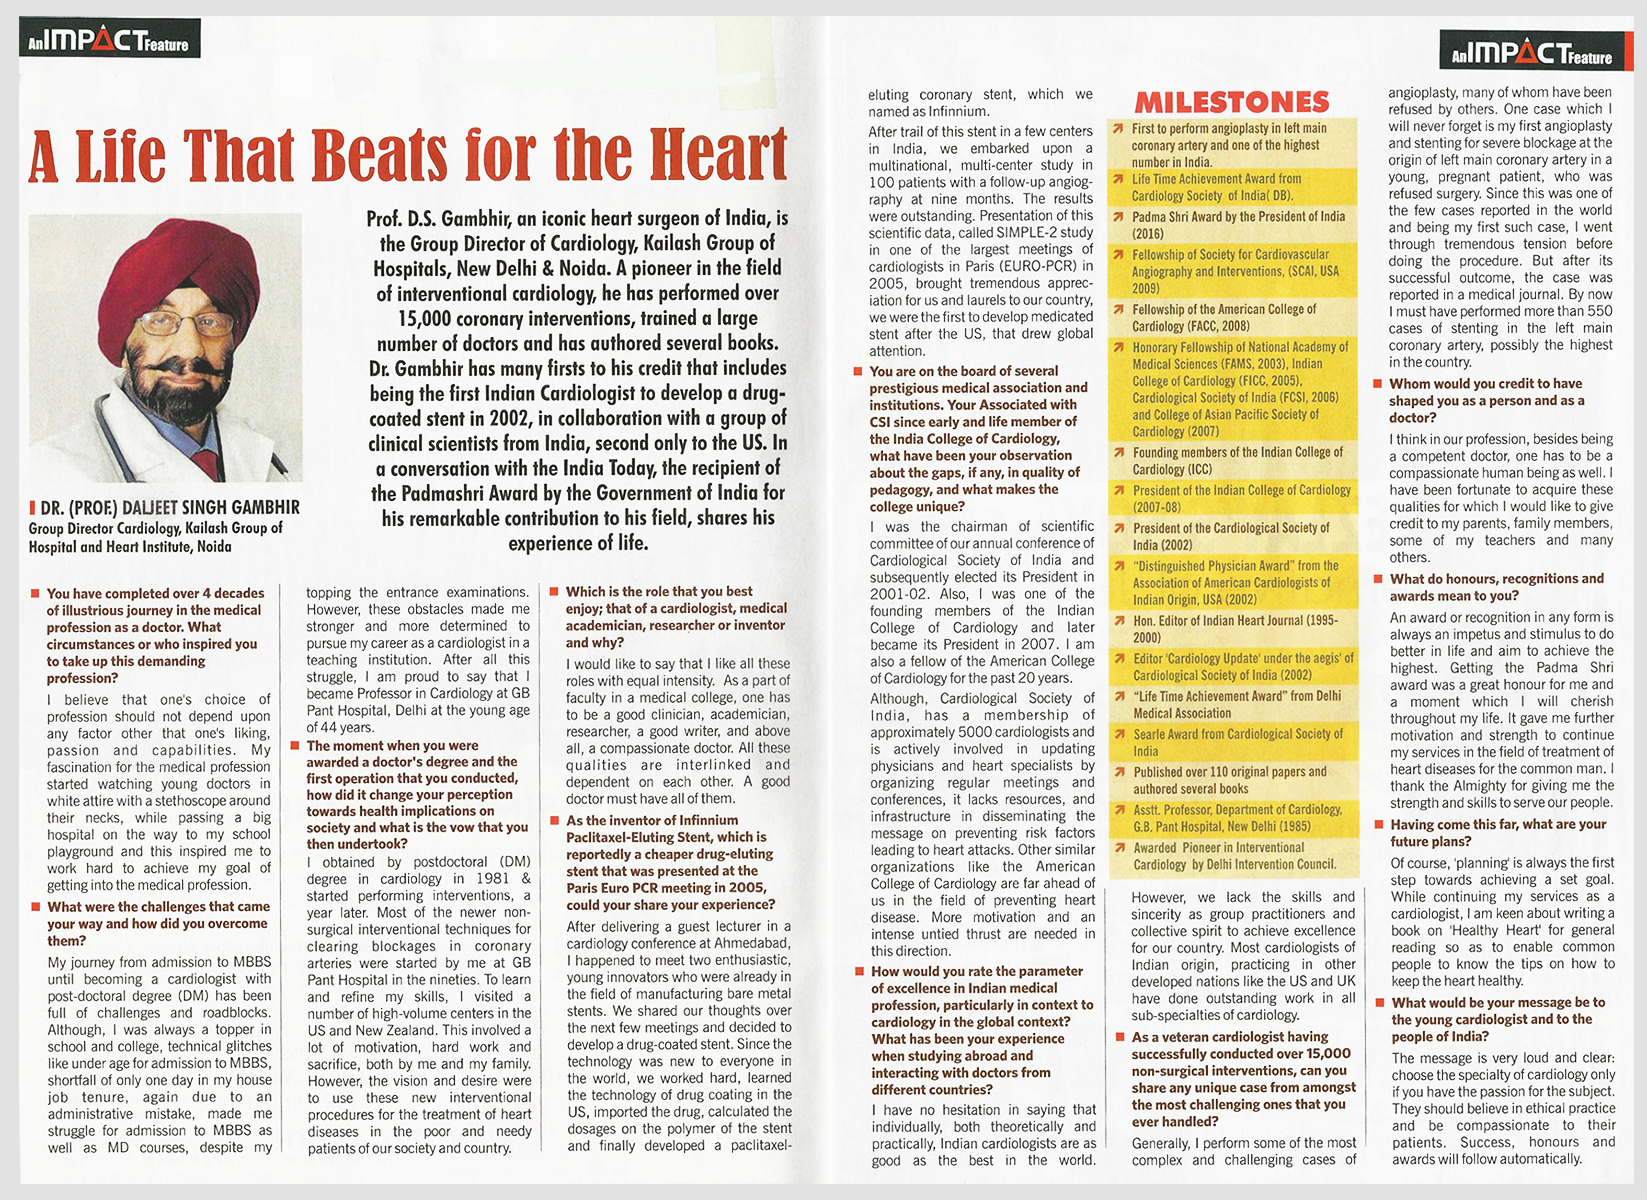 India Today publishes interview with India's iconic Heart Surgeon Prof. Dr. D.S Gambhir for his remarkable contribution to Cardiology